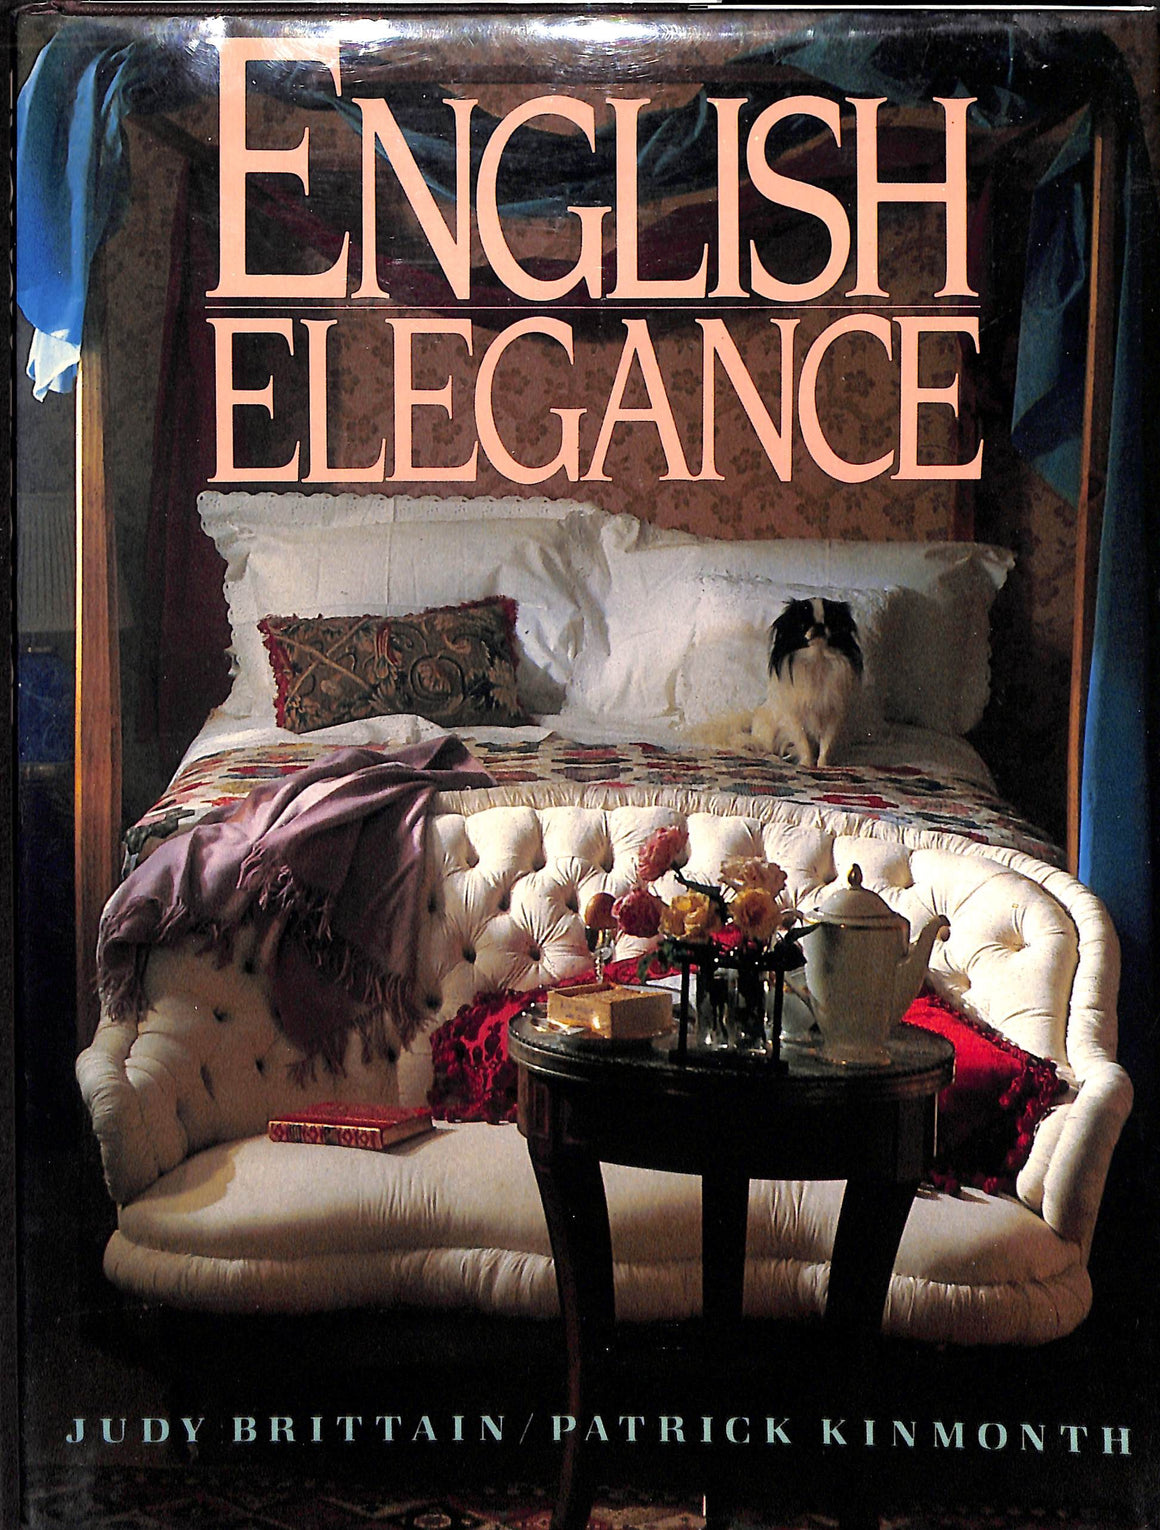 English Elegance by Judy Brittain & Patrick Kinmonth